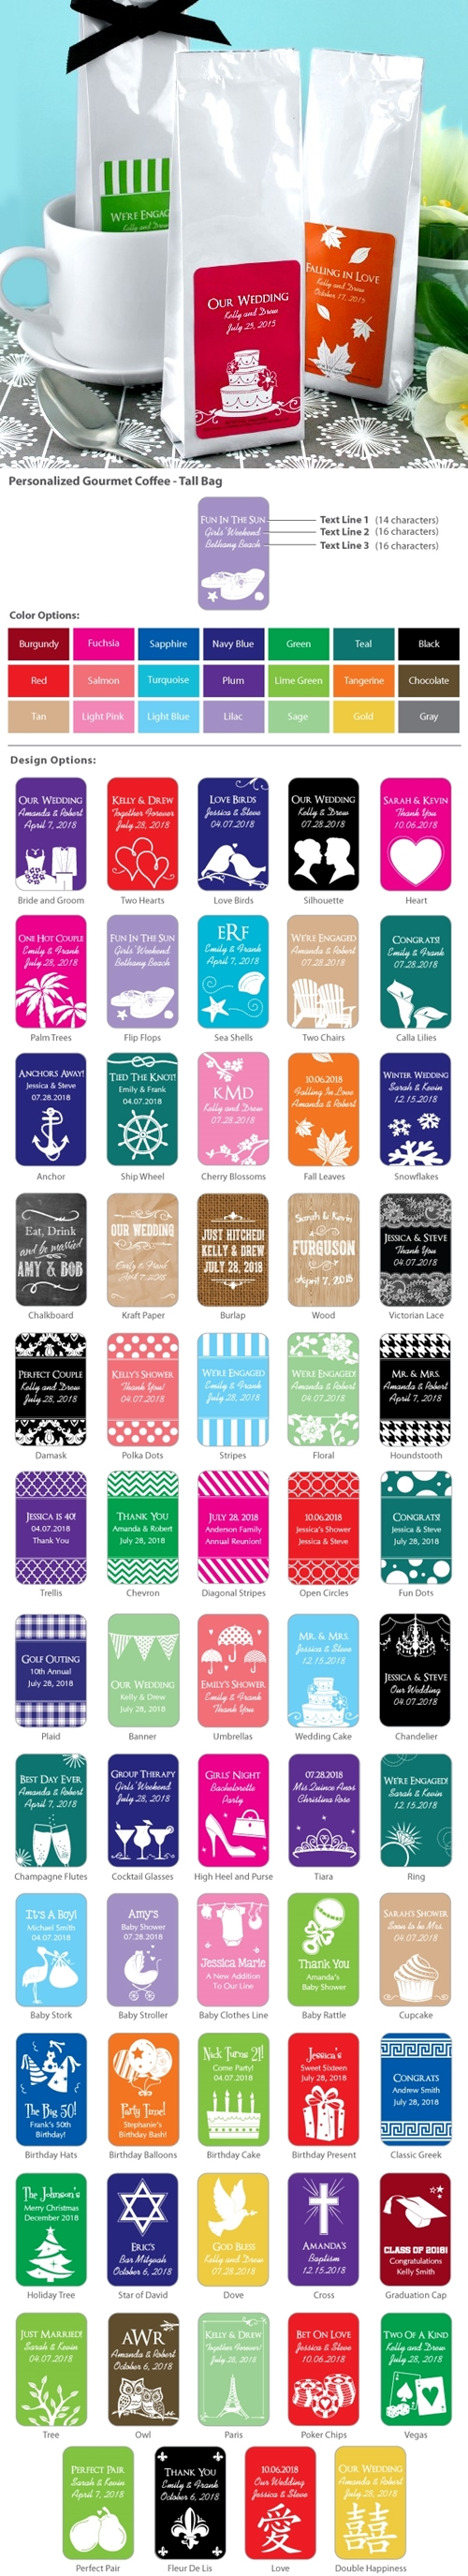 Personalized Silhouette Collection Coffee Tall Bag Favors (56 Designs)